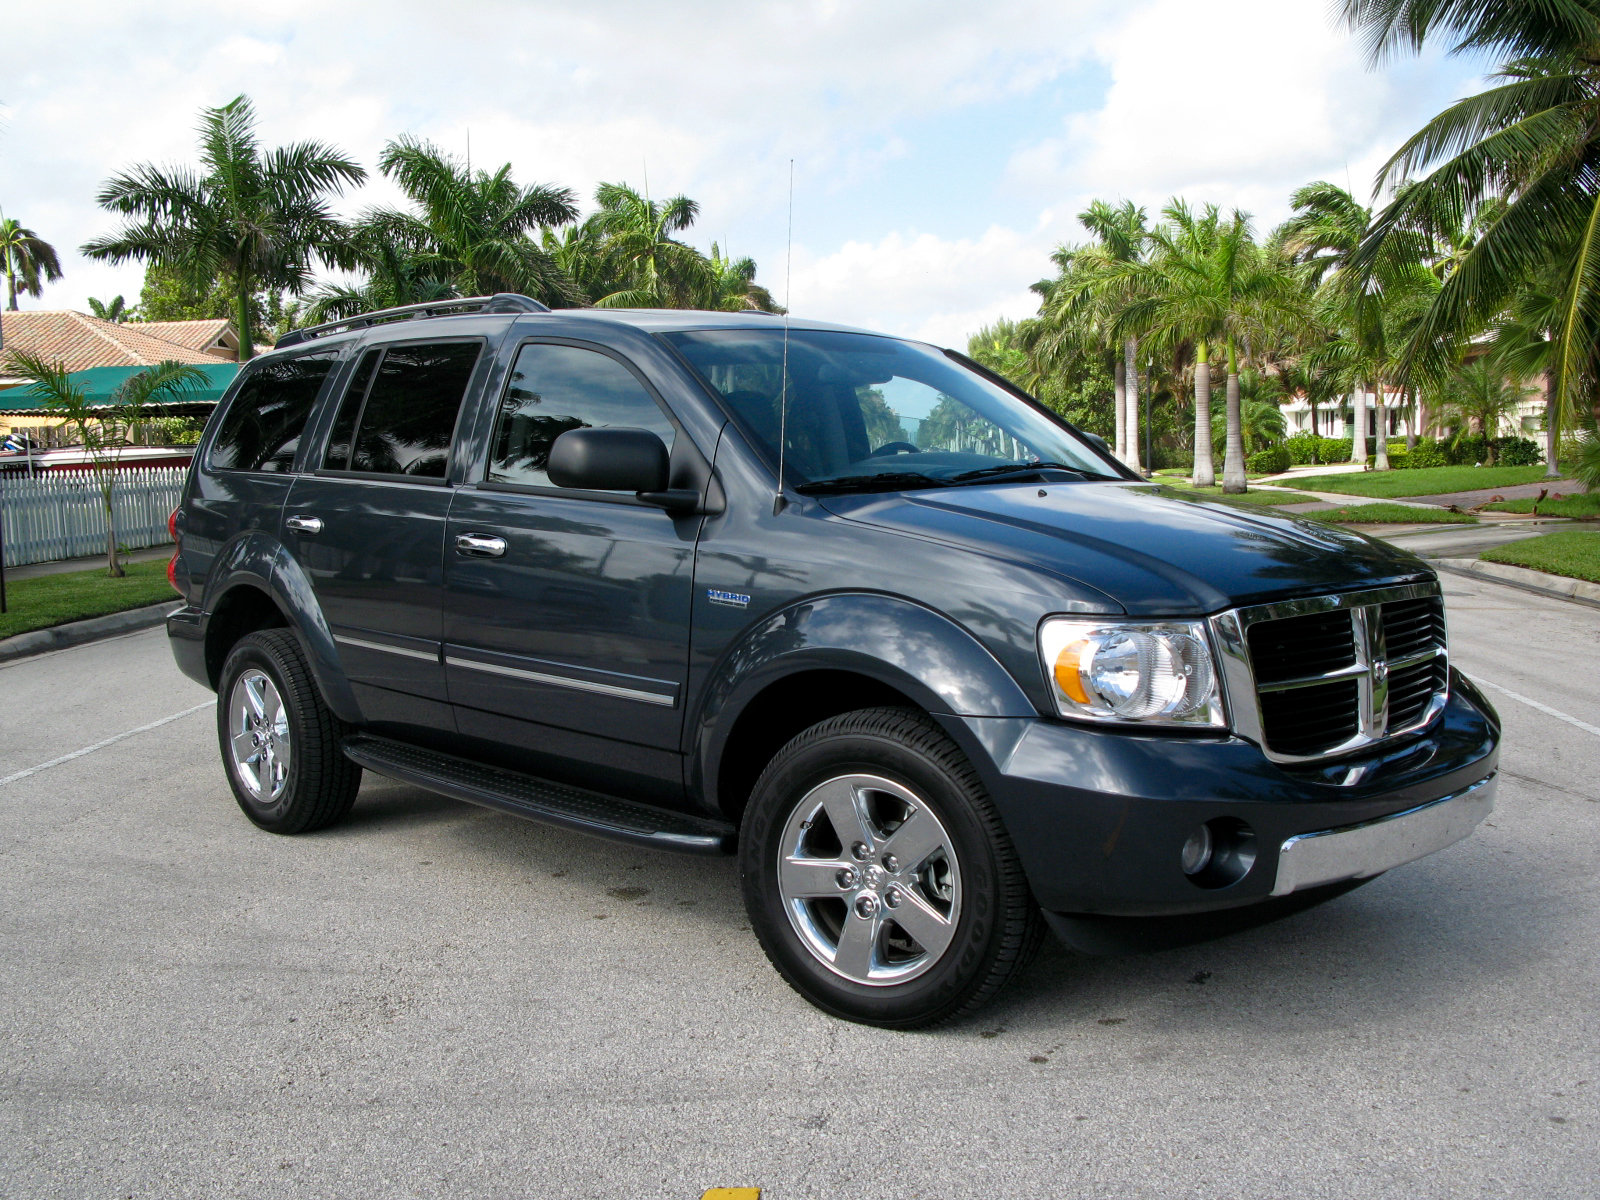 2008 dodge durango hybrid limited 4x4 picture 269694 car review top speed. Black Bedroom Furniture Sets. Home Design Ideas